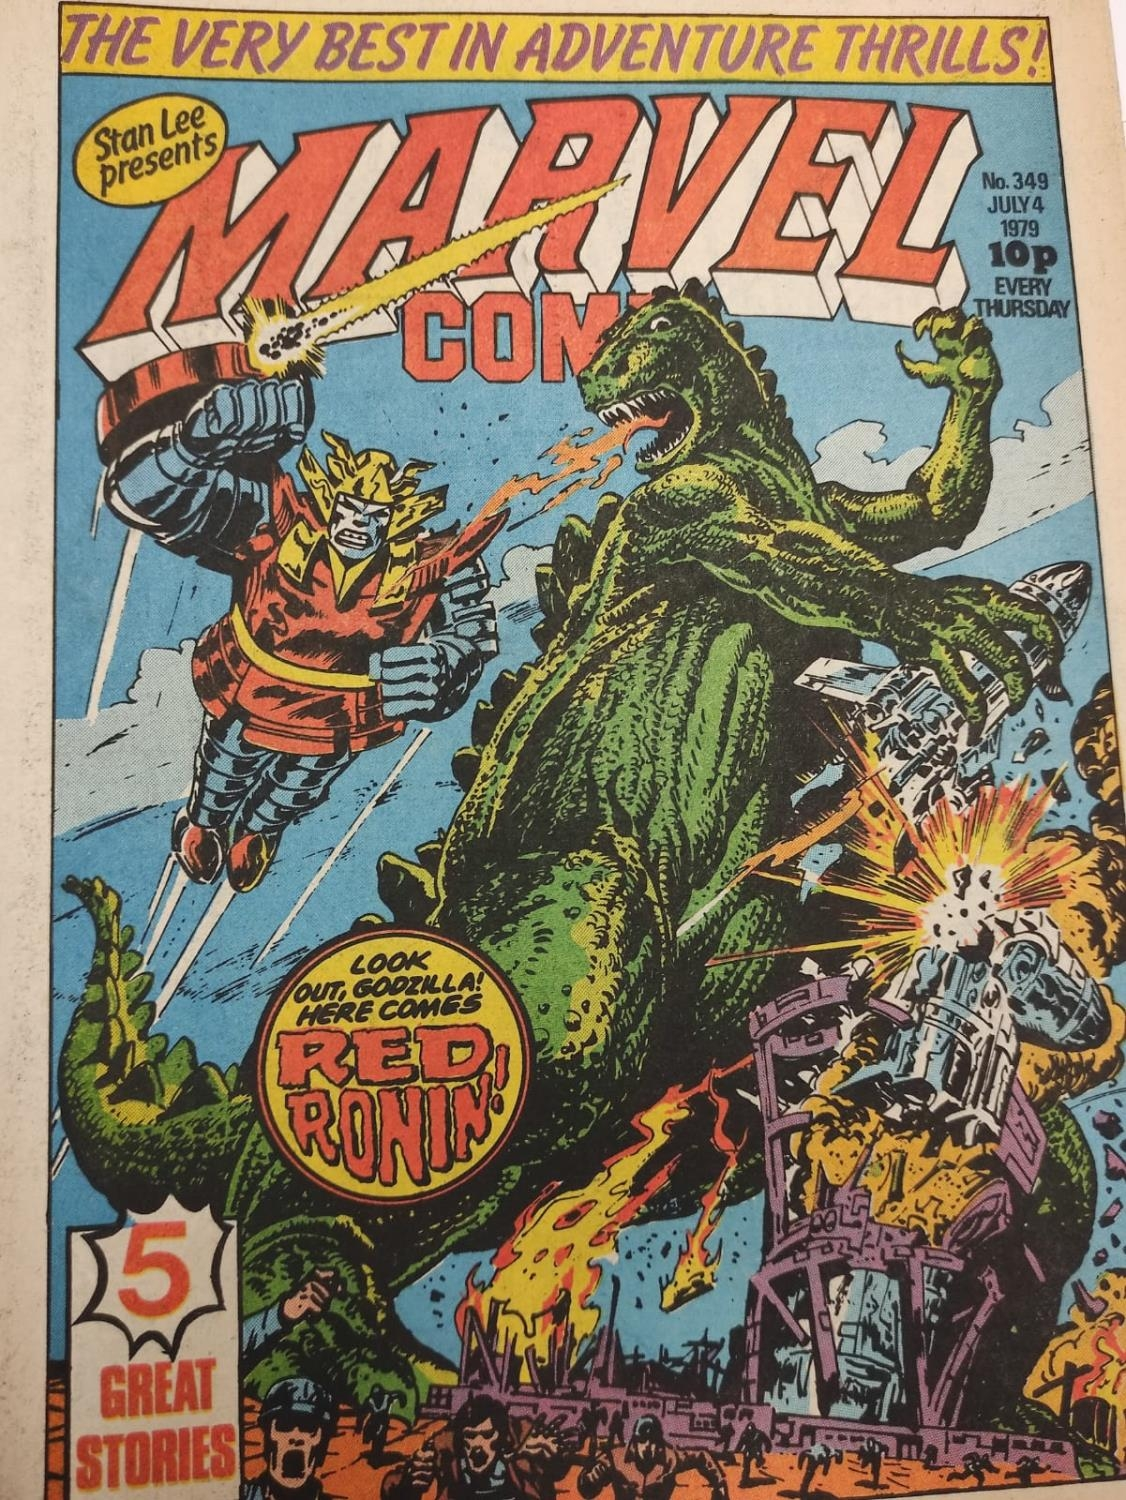 20 editions of mixed Vintage Marvel Comics. - Image 45 of 56